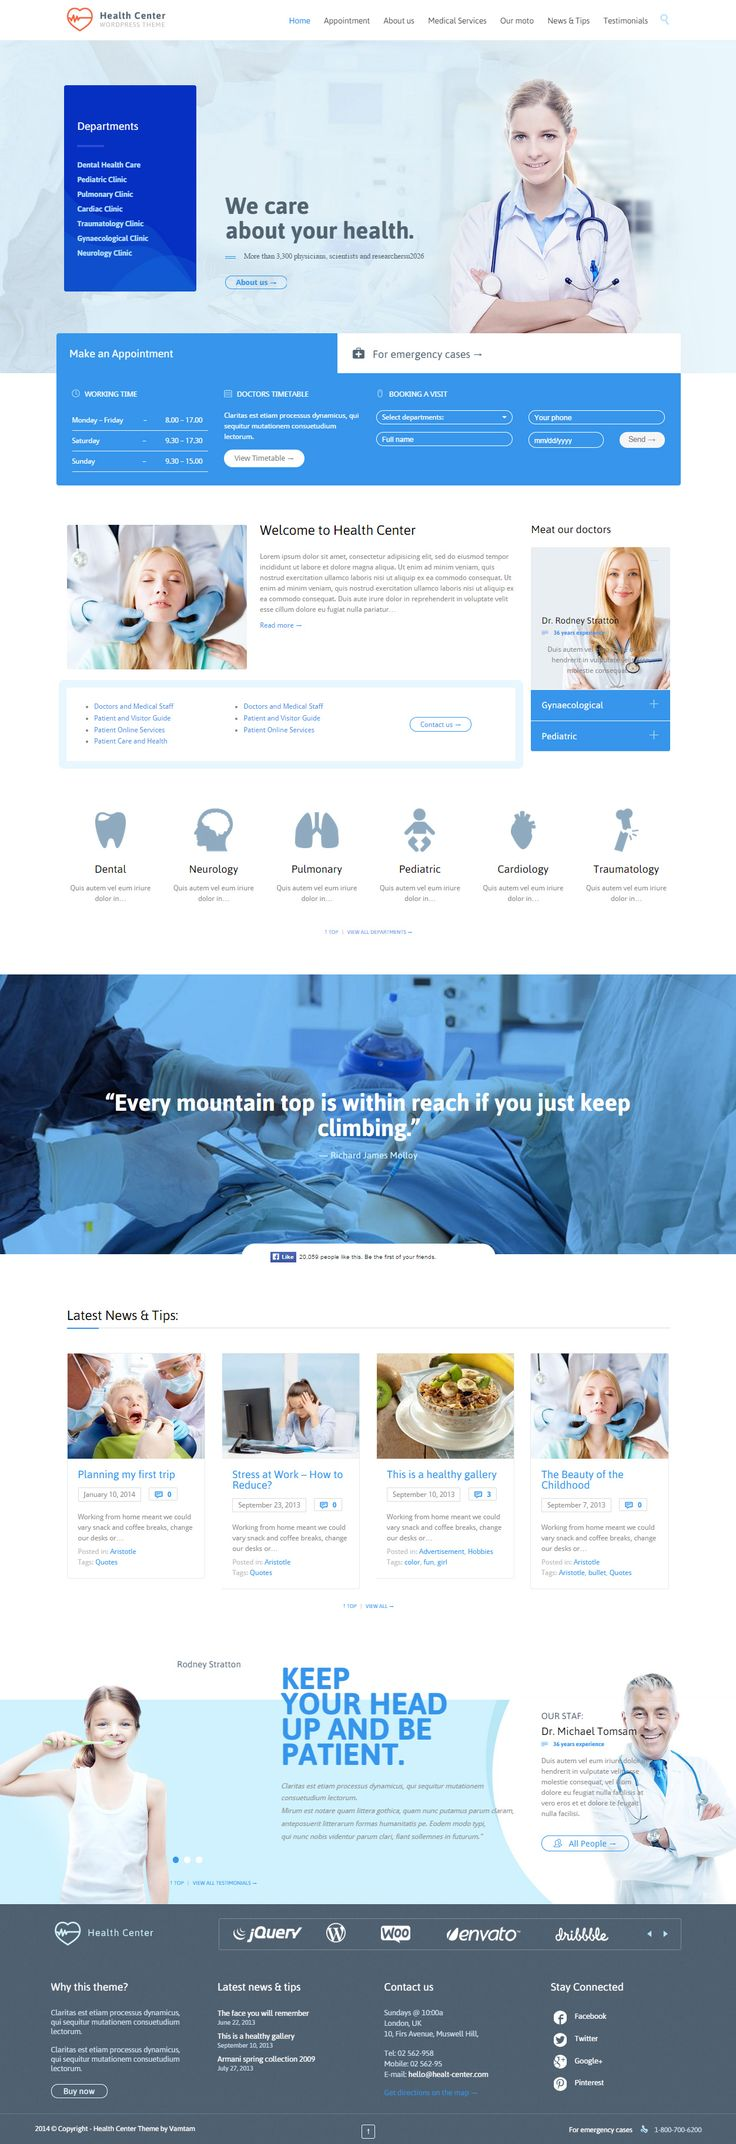 Health Medical Center is Premium full Responsive Retina Parallax WordPress Medical theme. WooCommerce. Drag & Drop. One Page. http://www.responsivemiracle.com/cms/health-medical-center-premium-responsive-wordpress-theme/